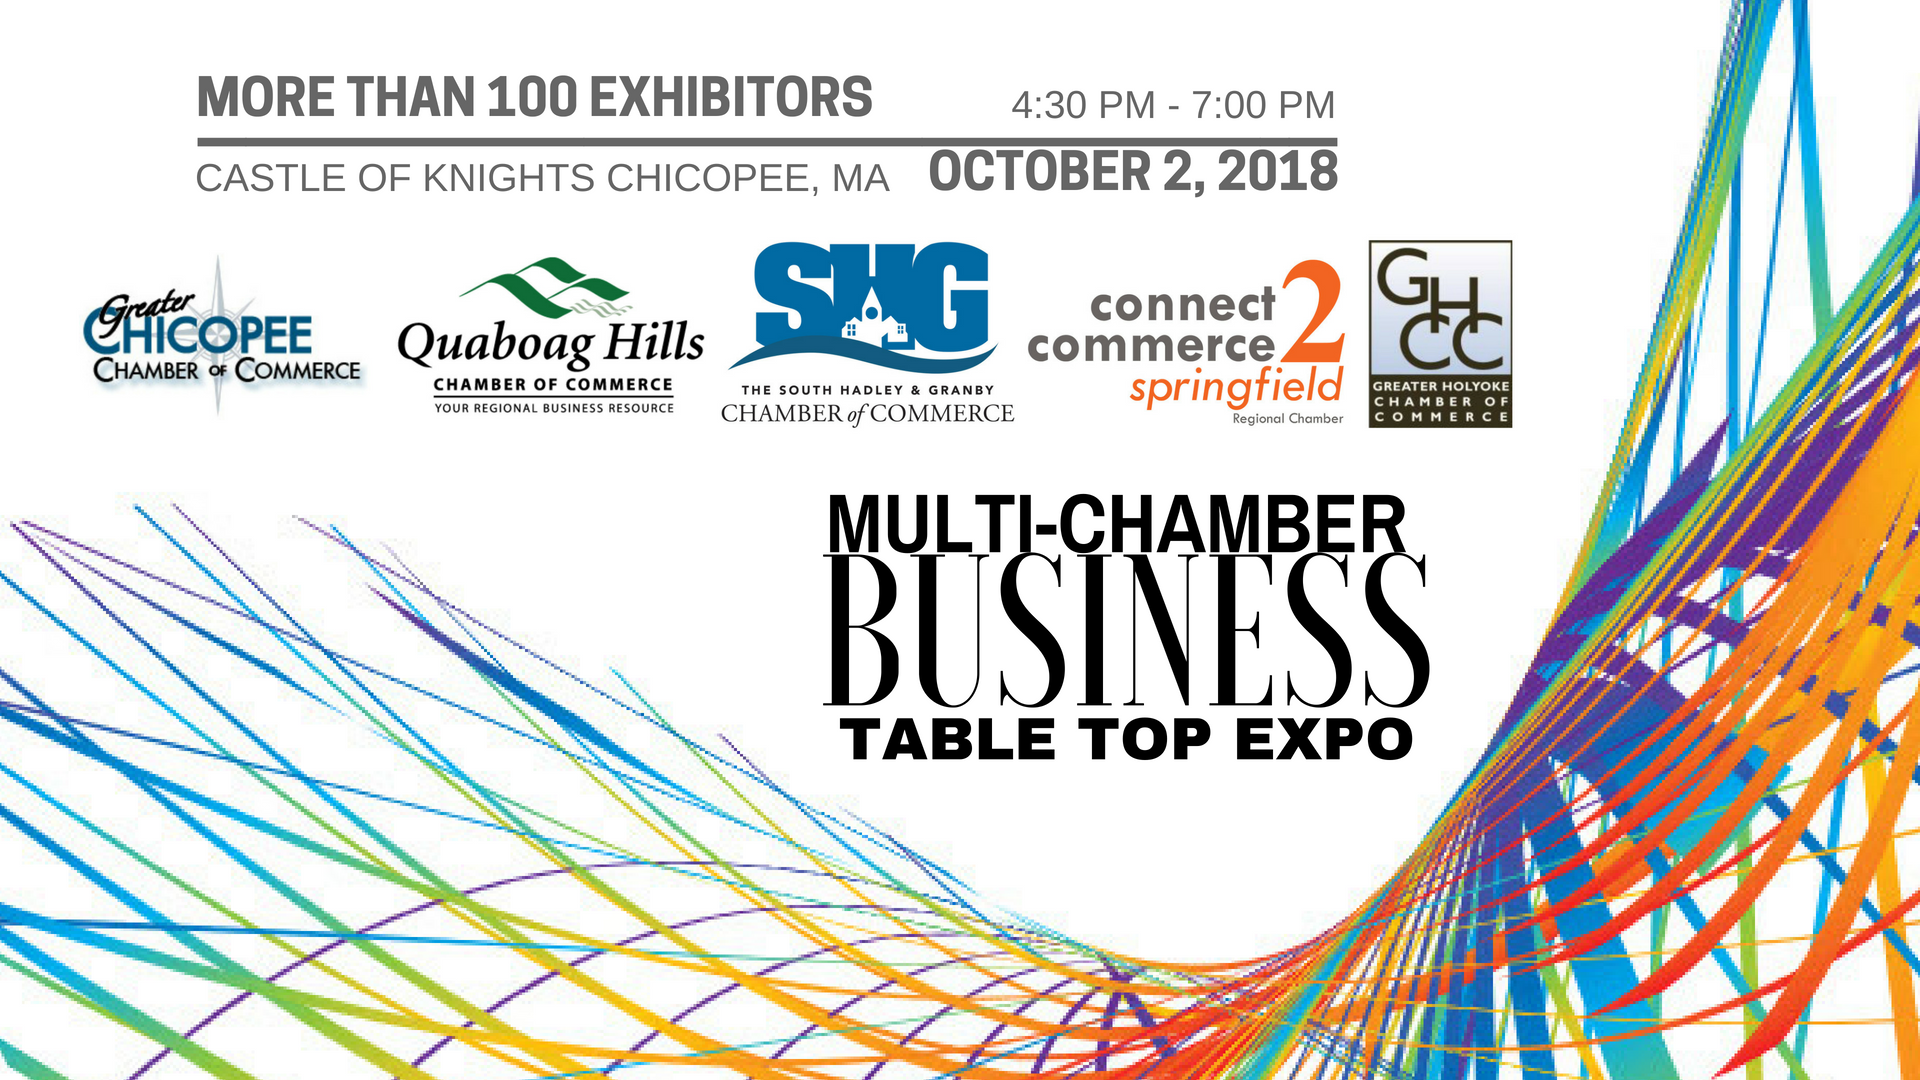 MULTI-CHAMBERBUSINESSEXPO-FacebookEventPost2.png